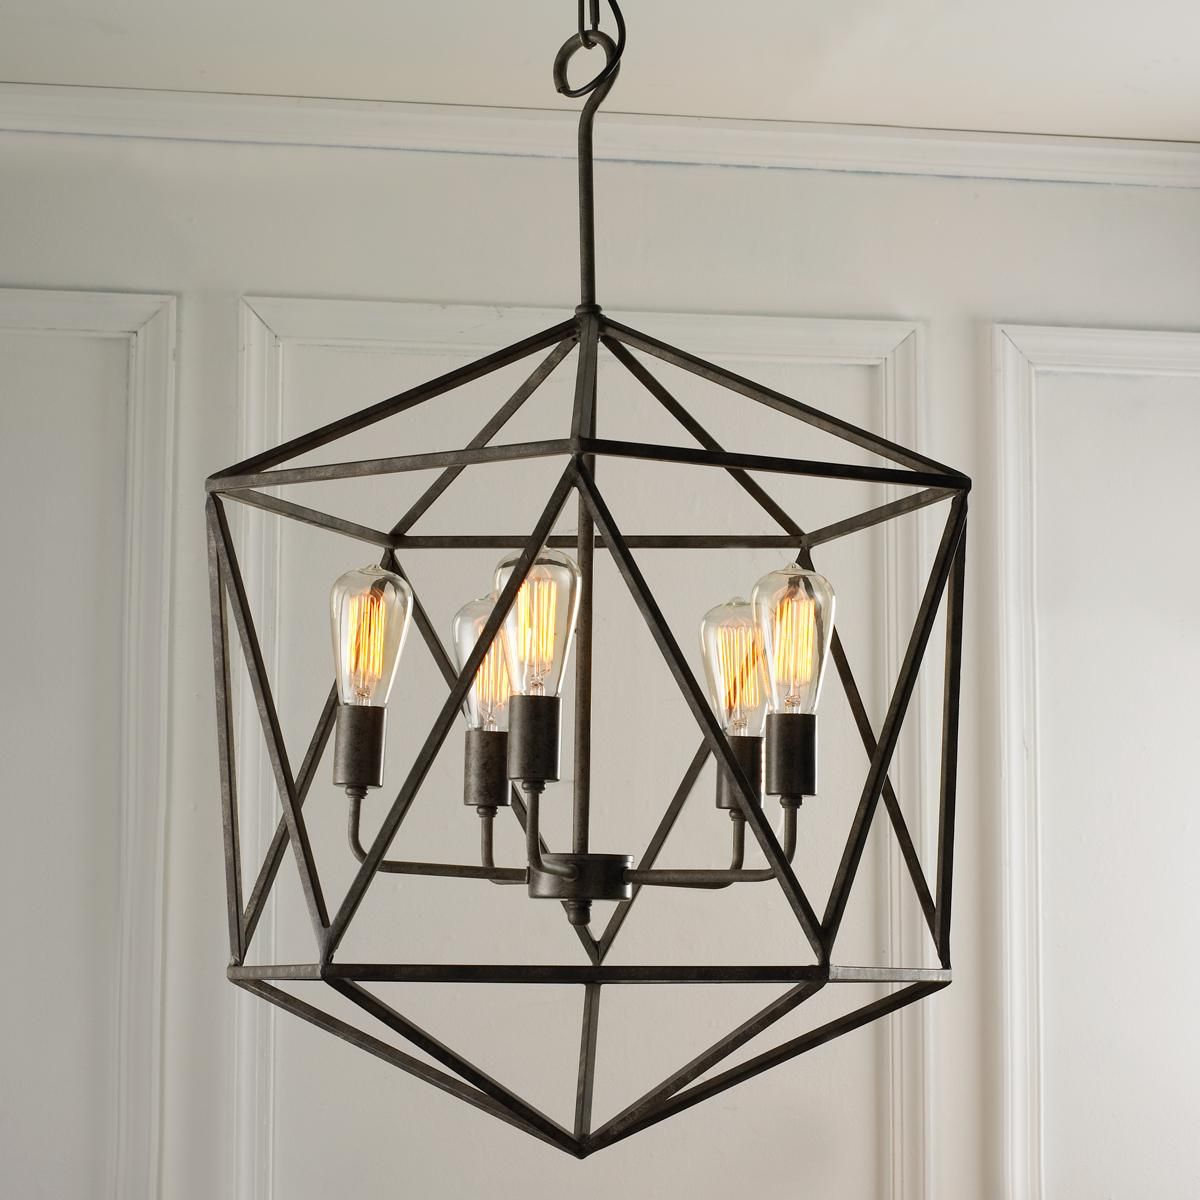 Geometric Gem Chandelier – 3 Light | Craftsman Style Home Throughout Hewitt 4 Light Square Chandeliers (View 14 of 30)